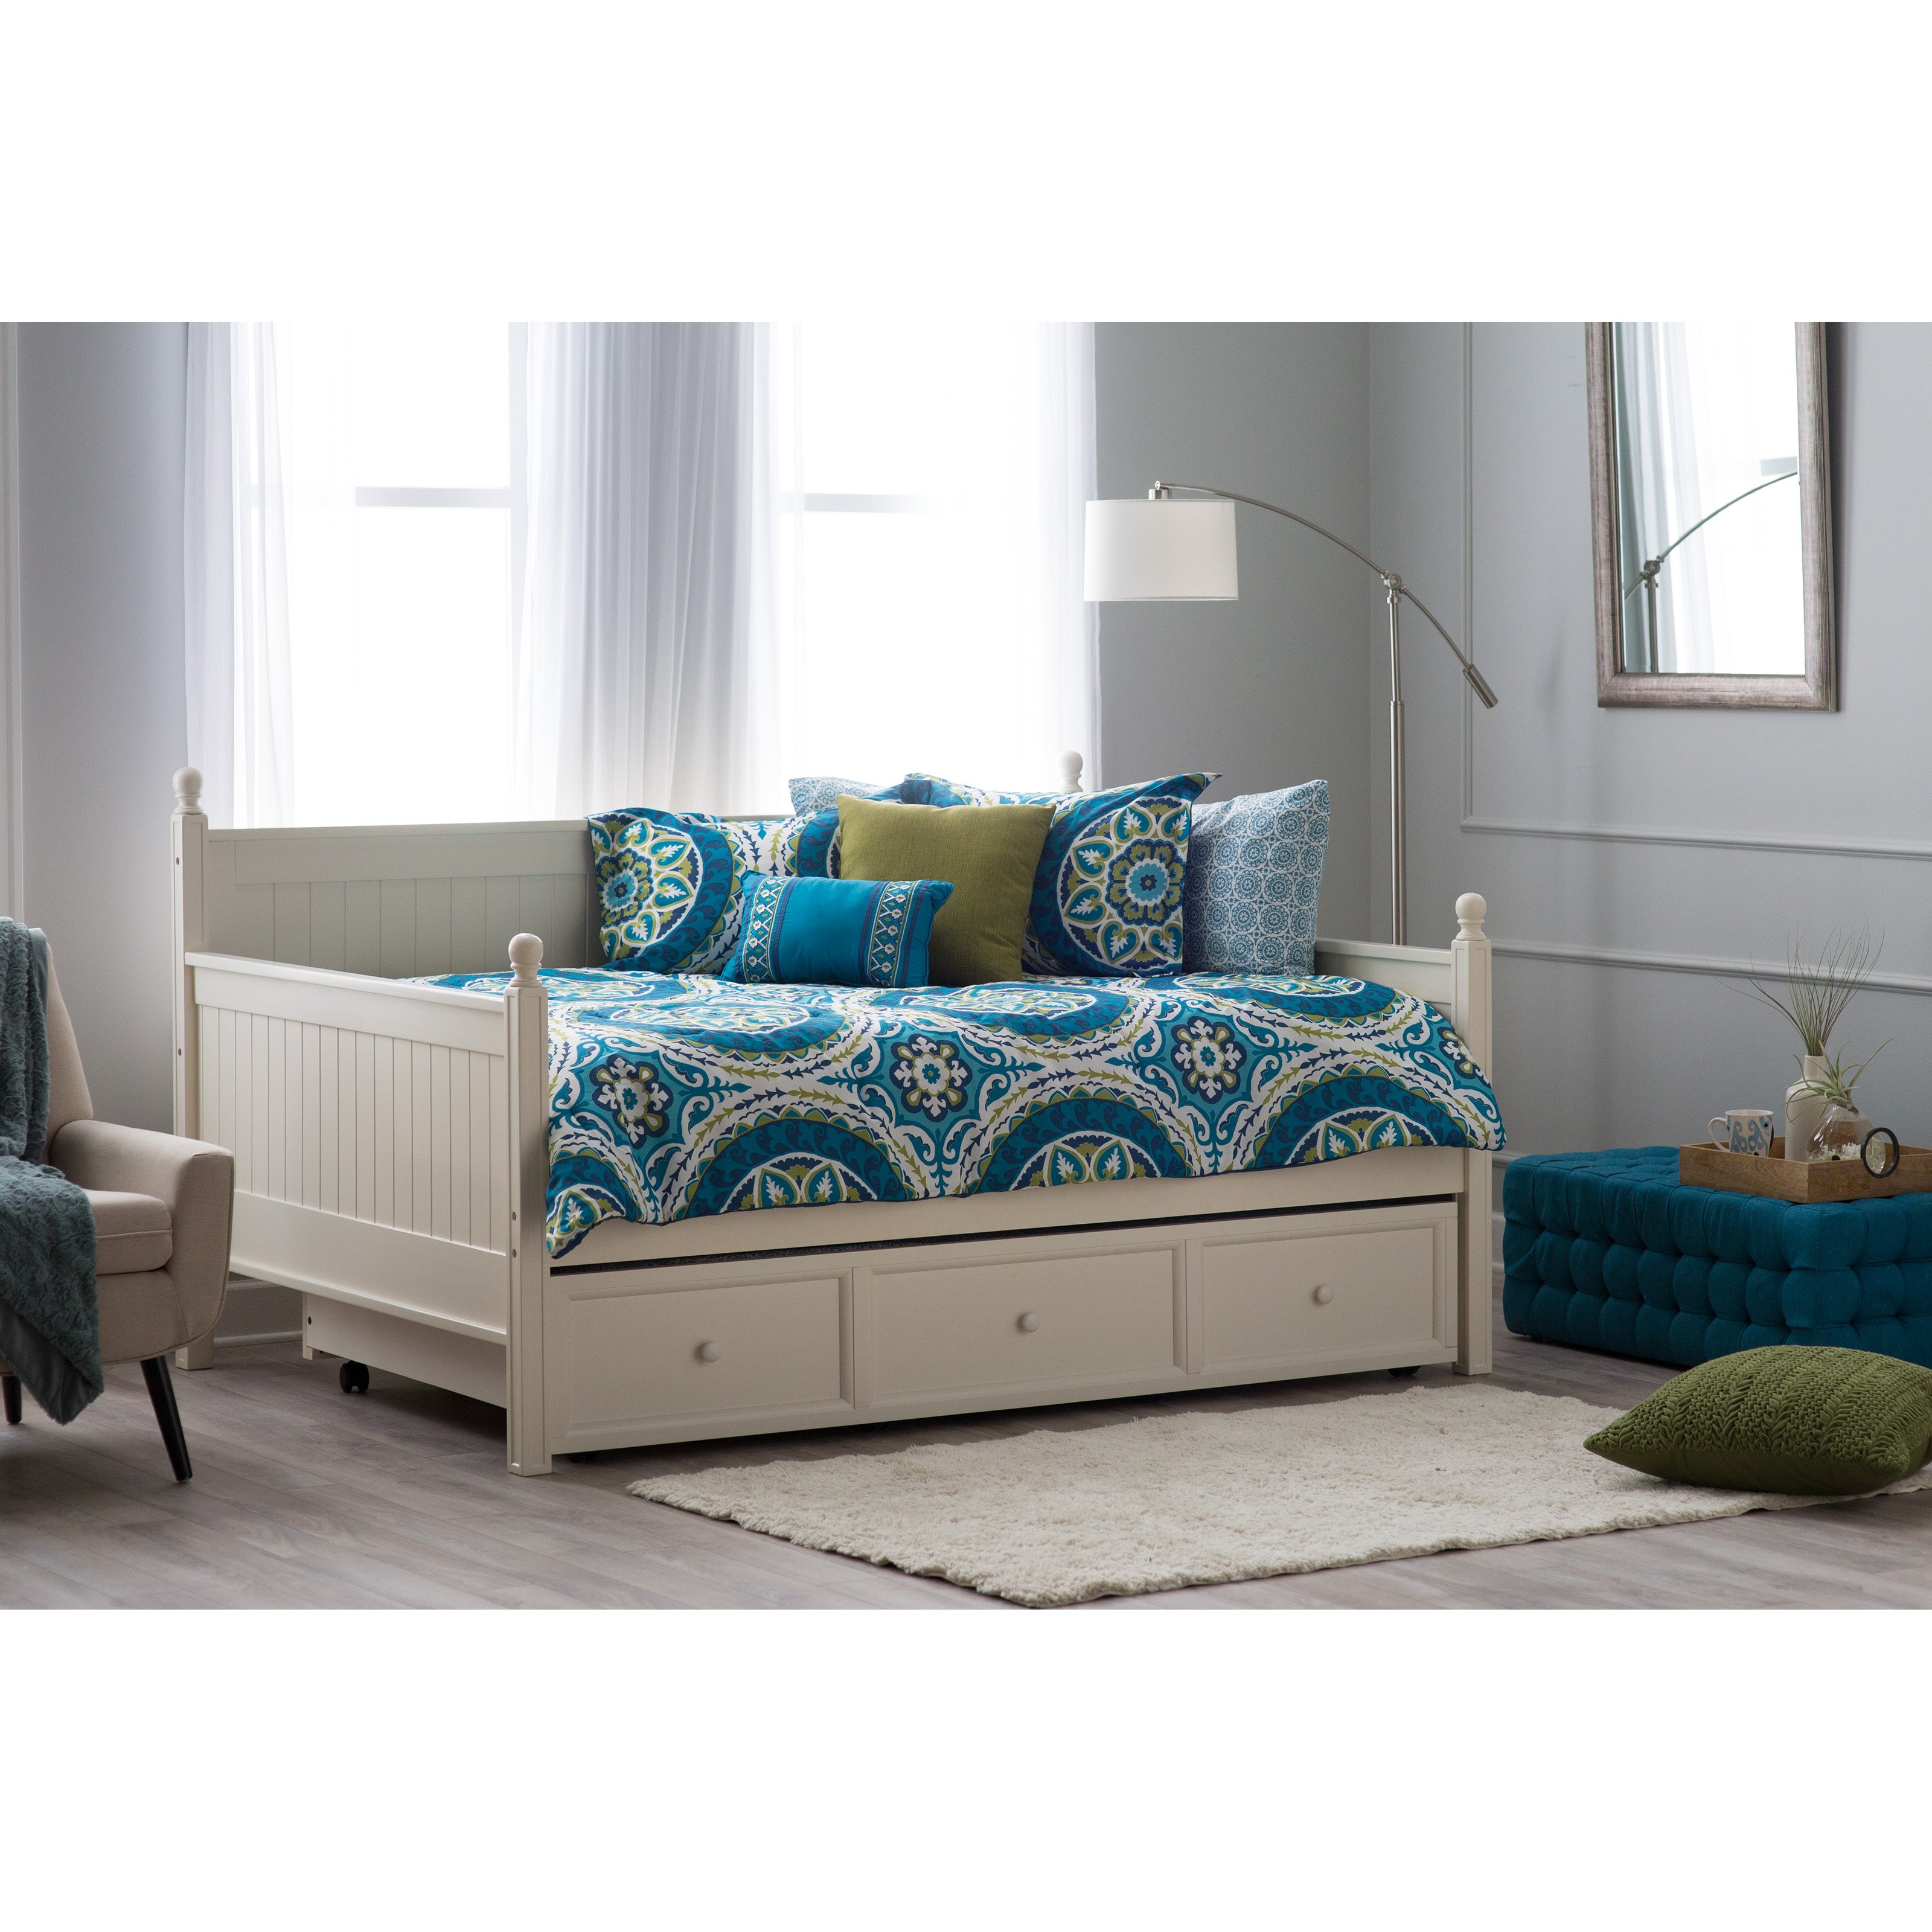 Bedroom Day Beds